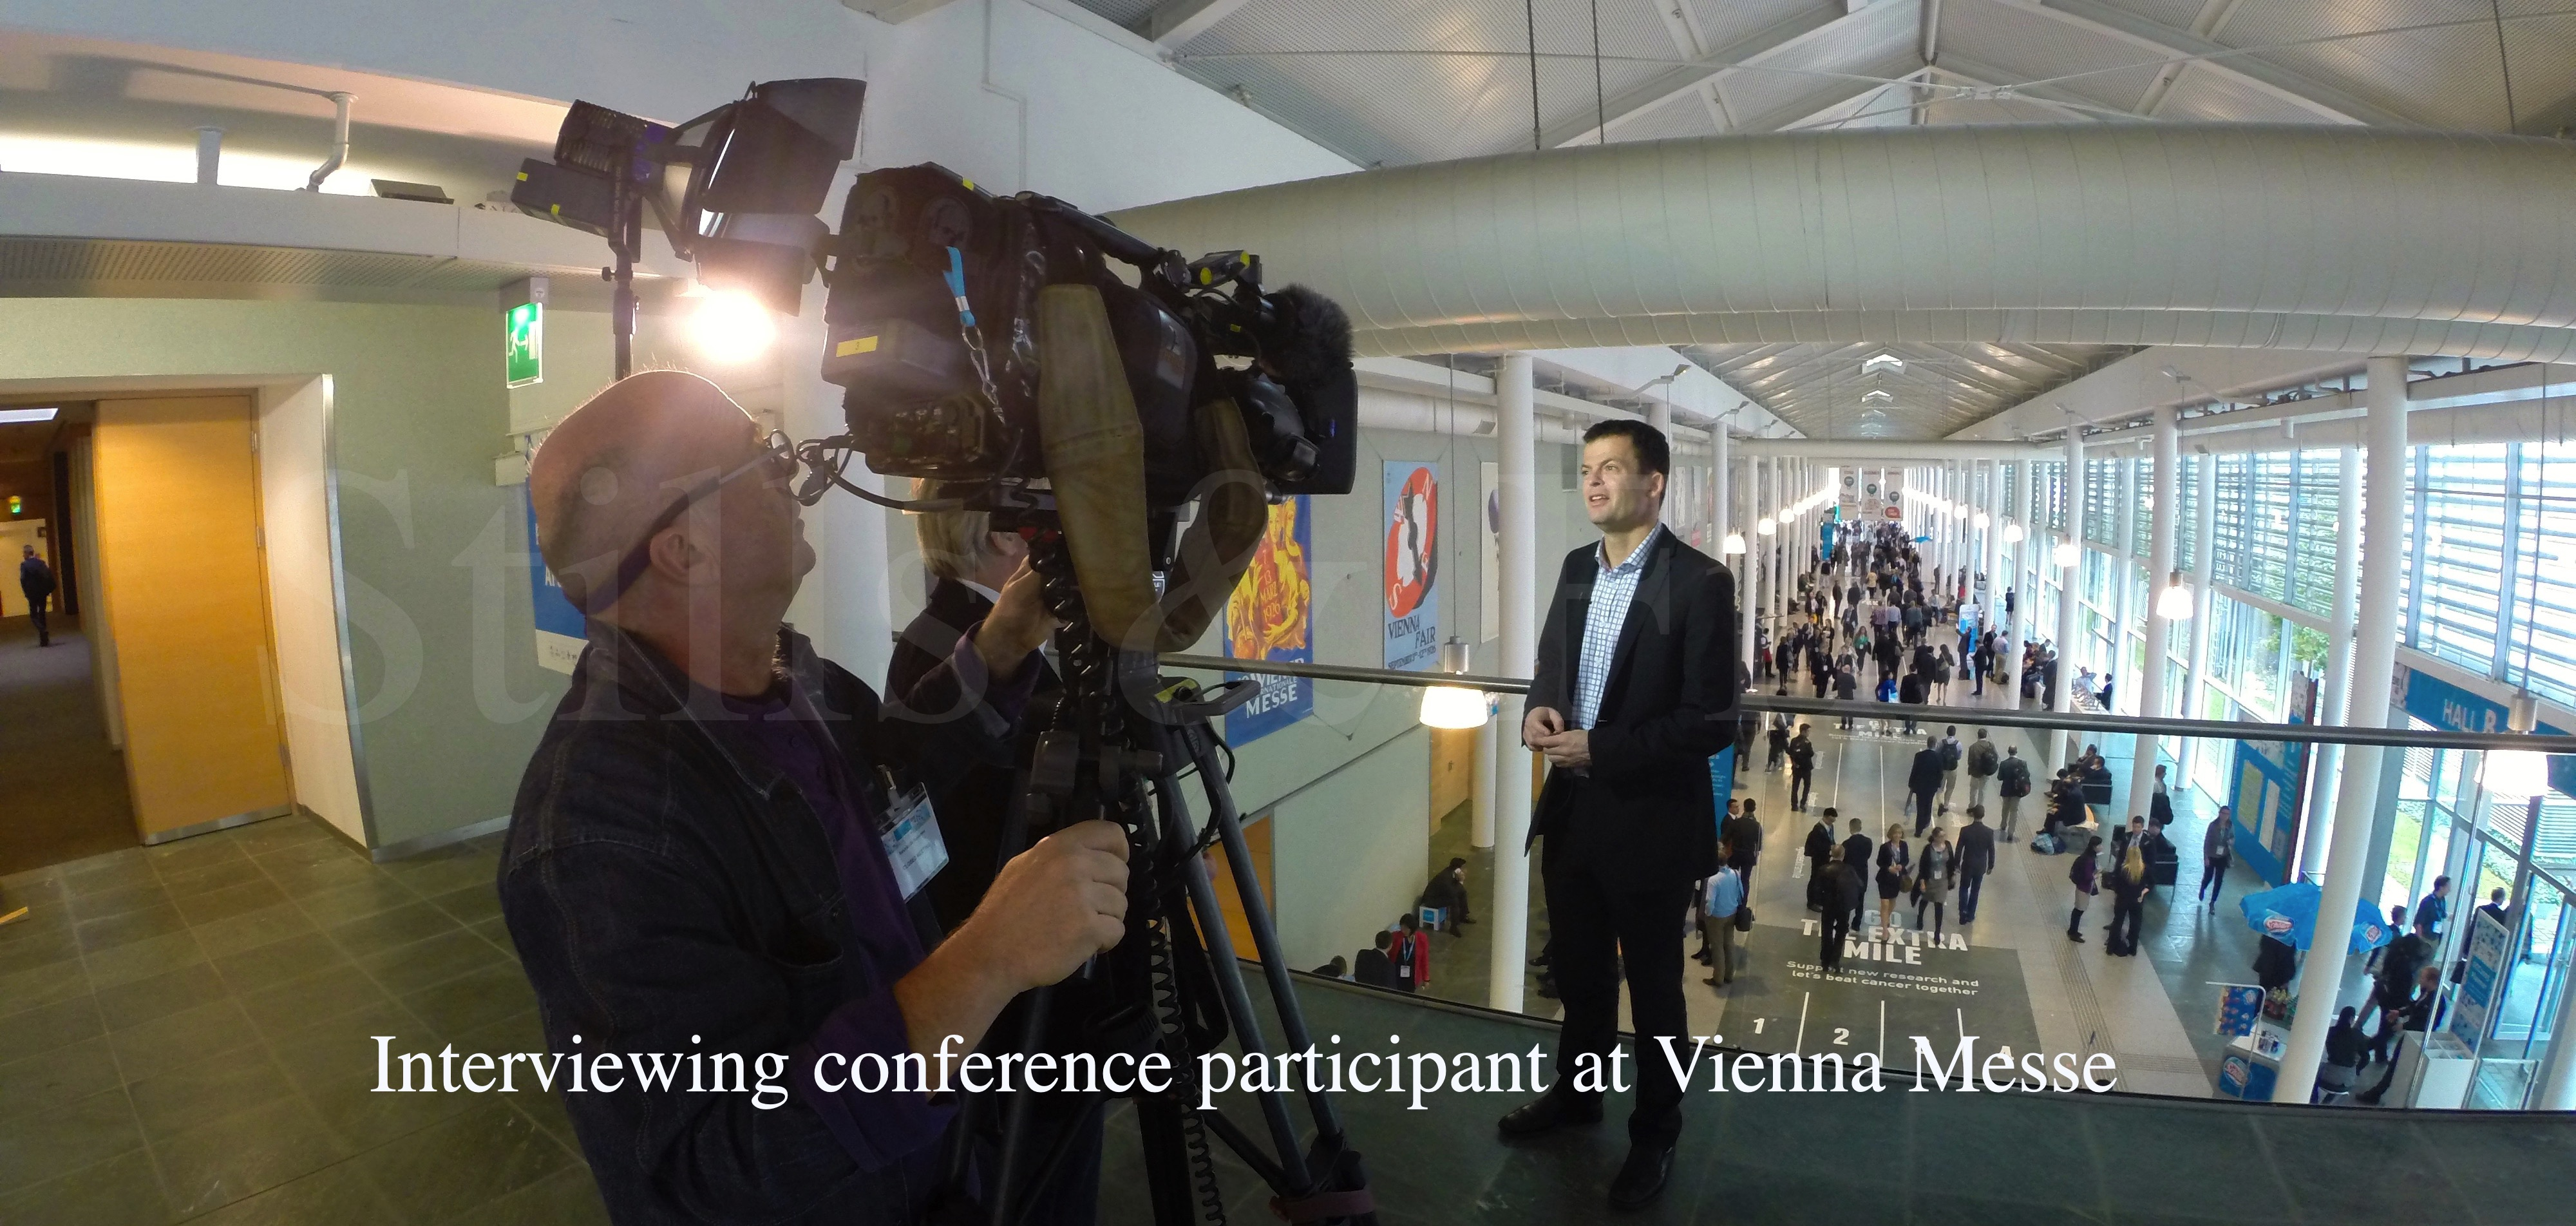 Interviewing conference participant at Vienna Messe